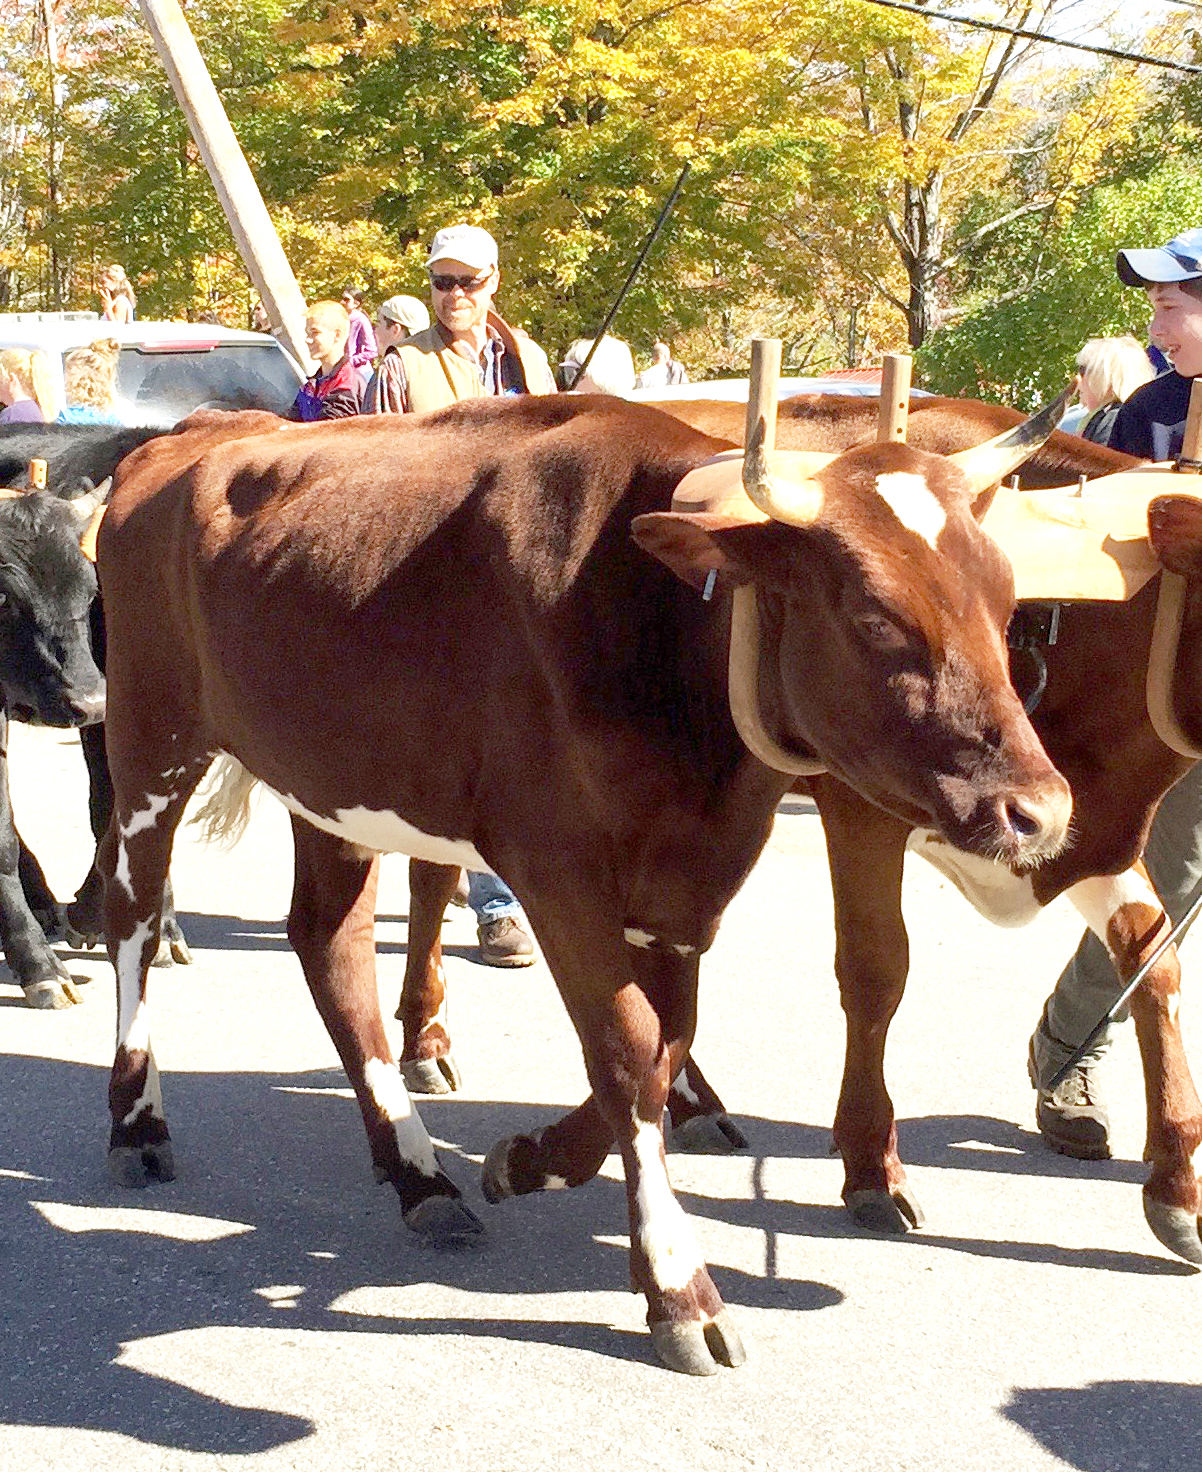 Animals are a popular part of the fair's parade